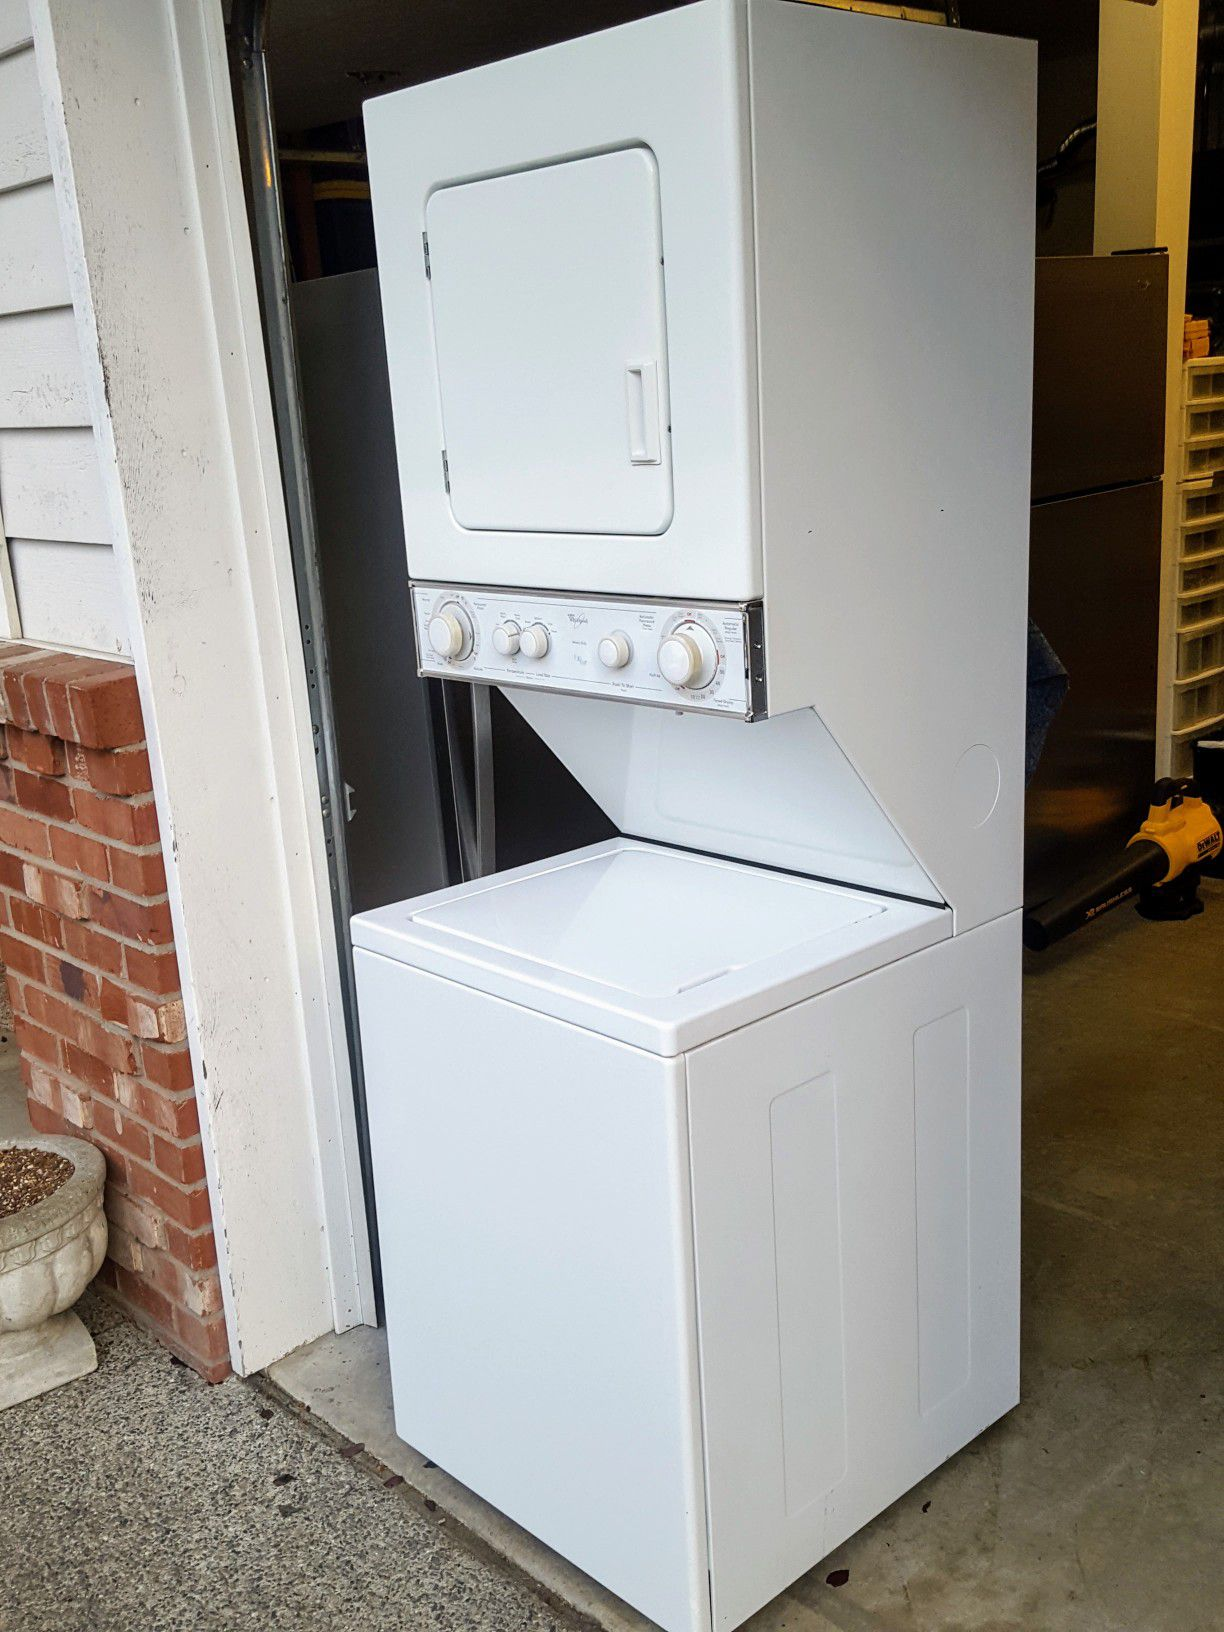 Whirlpool 24 inch stackable washer and dryer